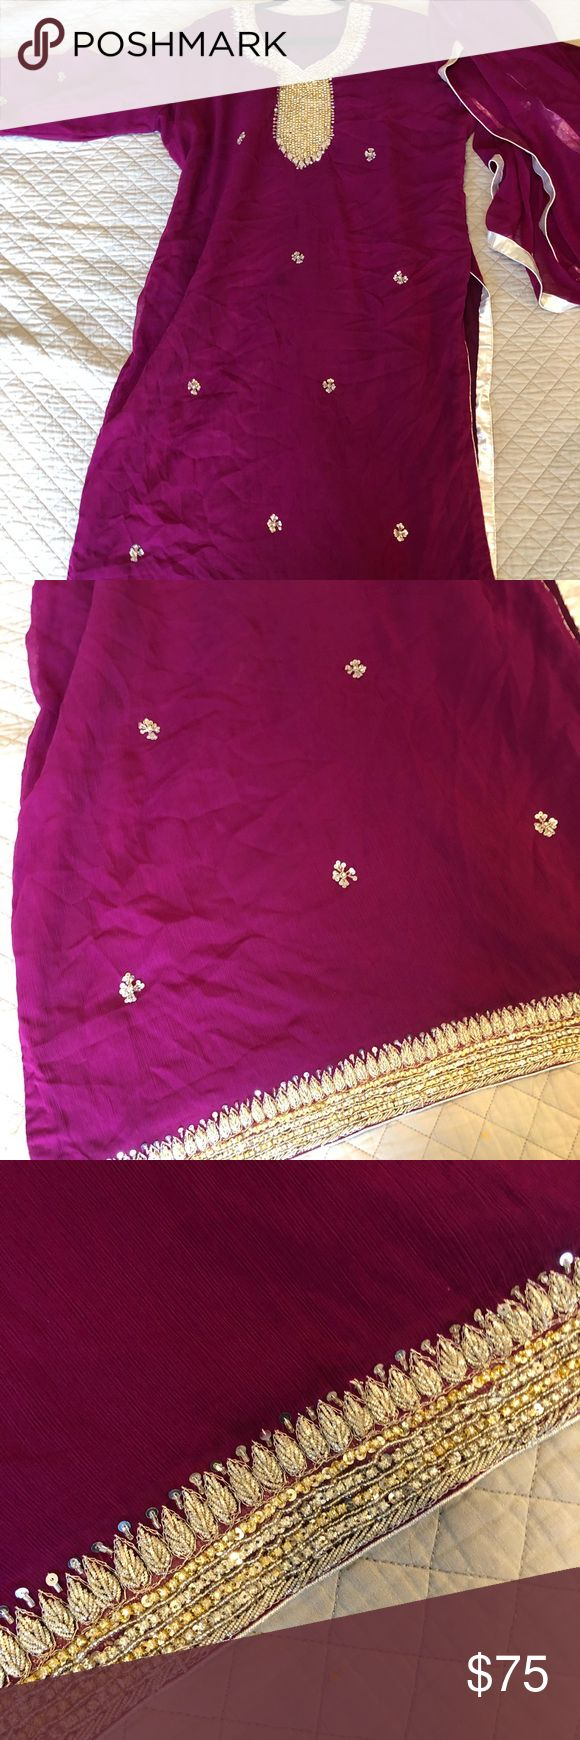 Pakistani / Indian Dress Anarkali Shalwar Kameez Pakistani / Indian Dress Anarkali Shalwar Kameez size XL-XXL. Good used condition. Dresses